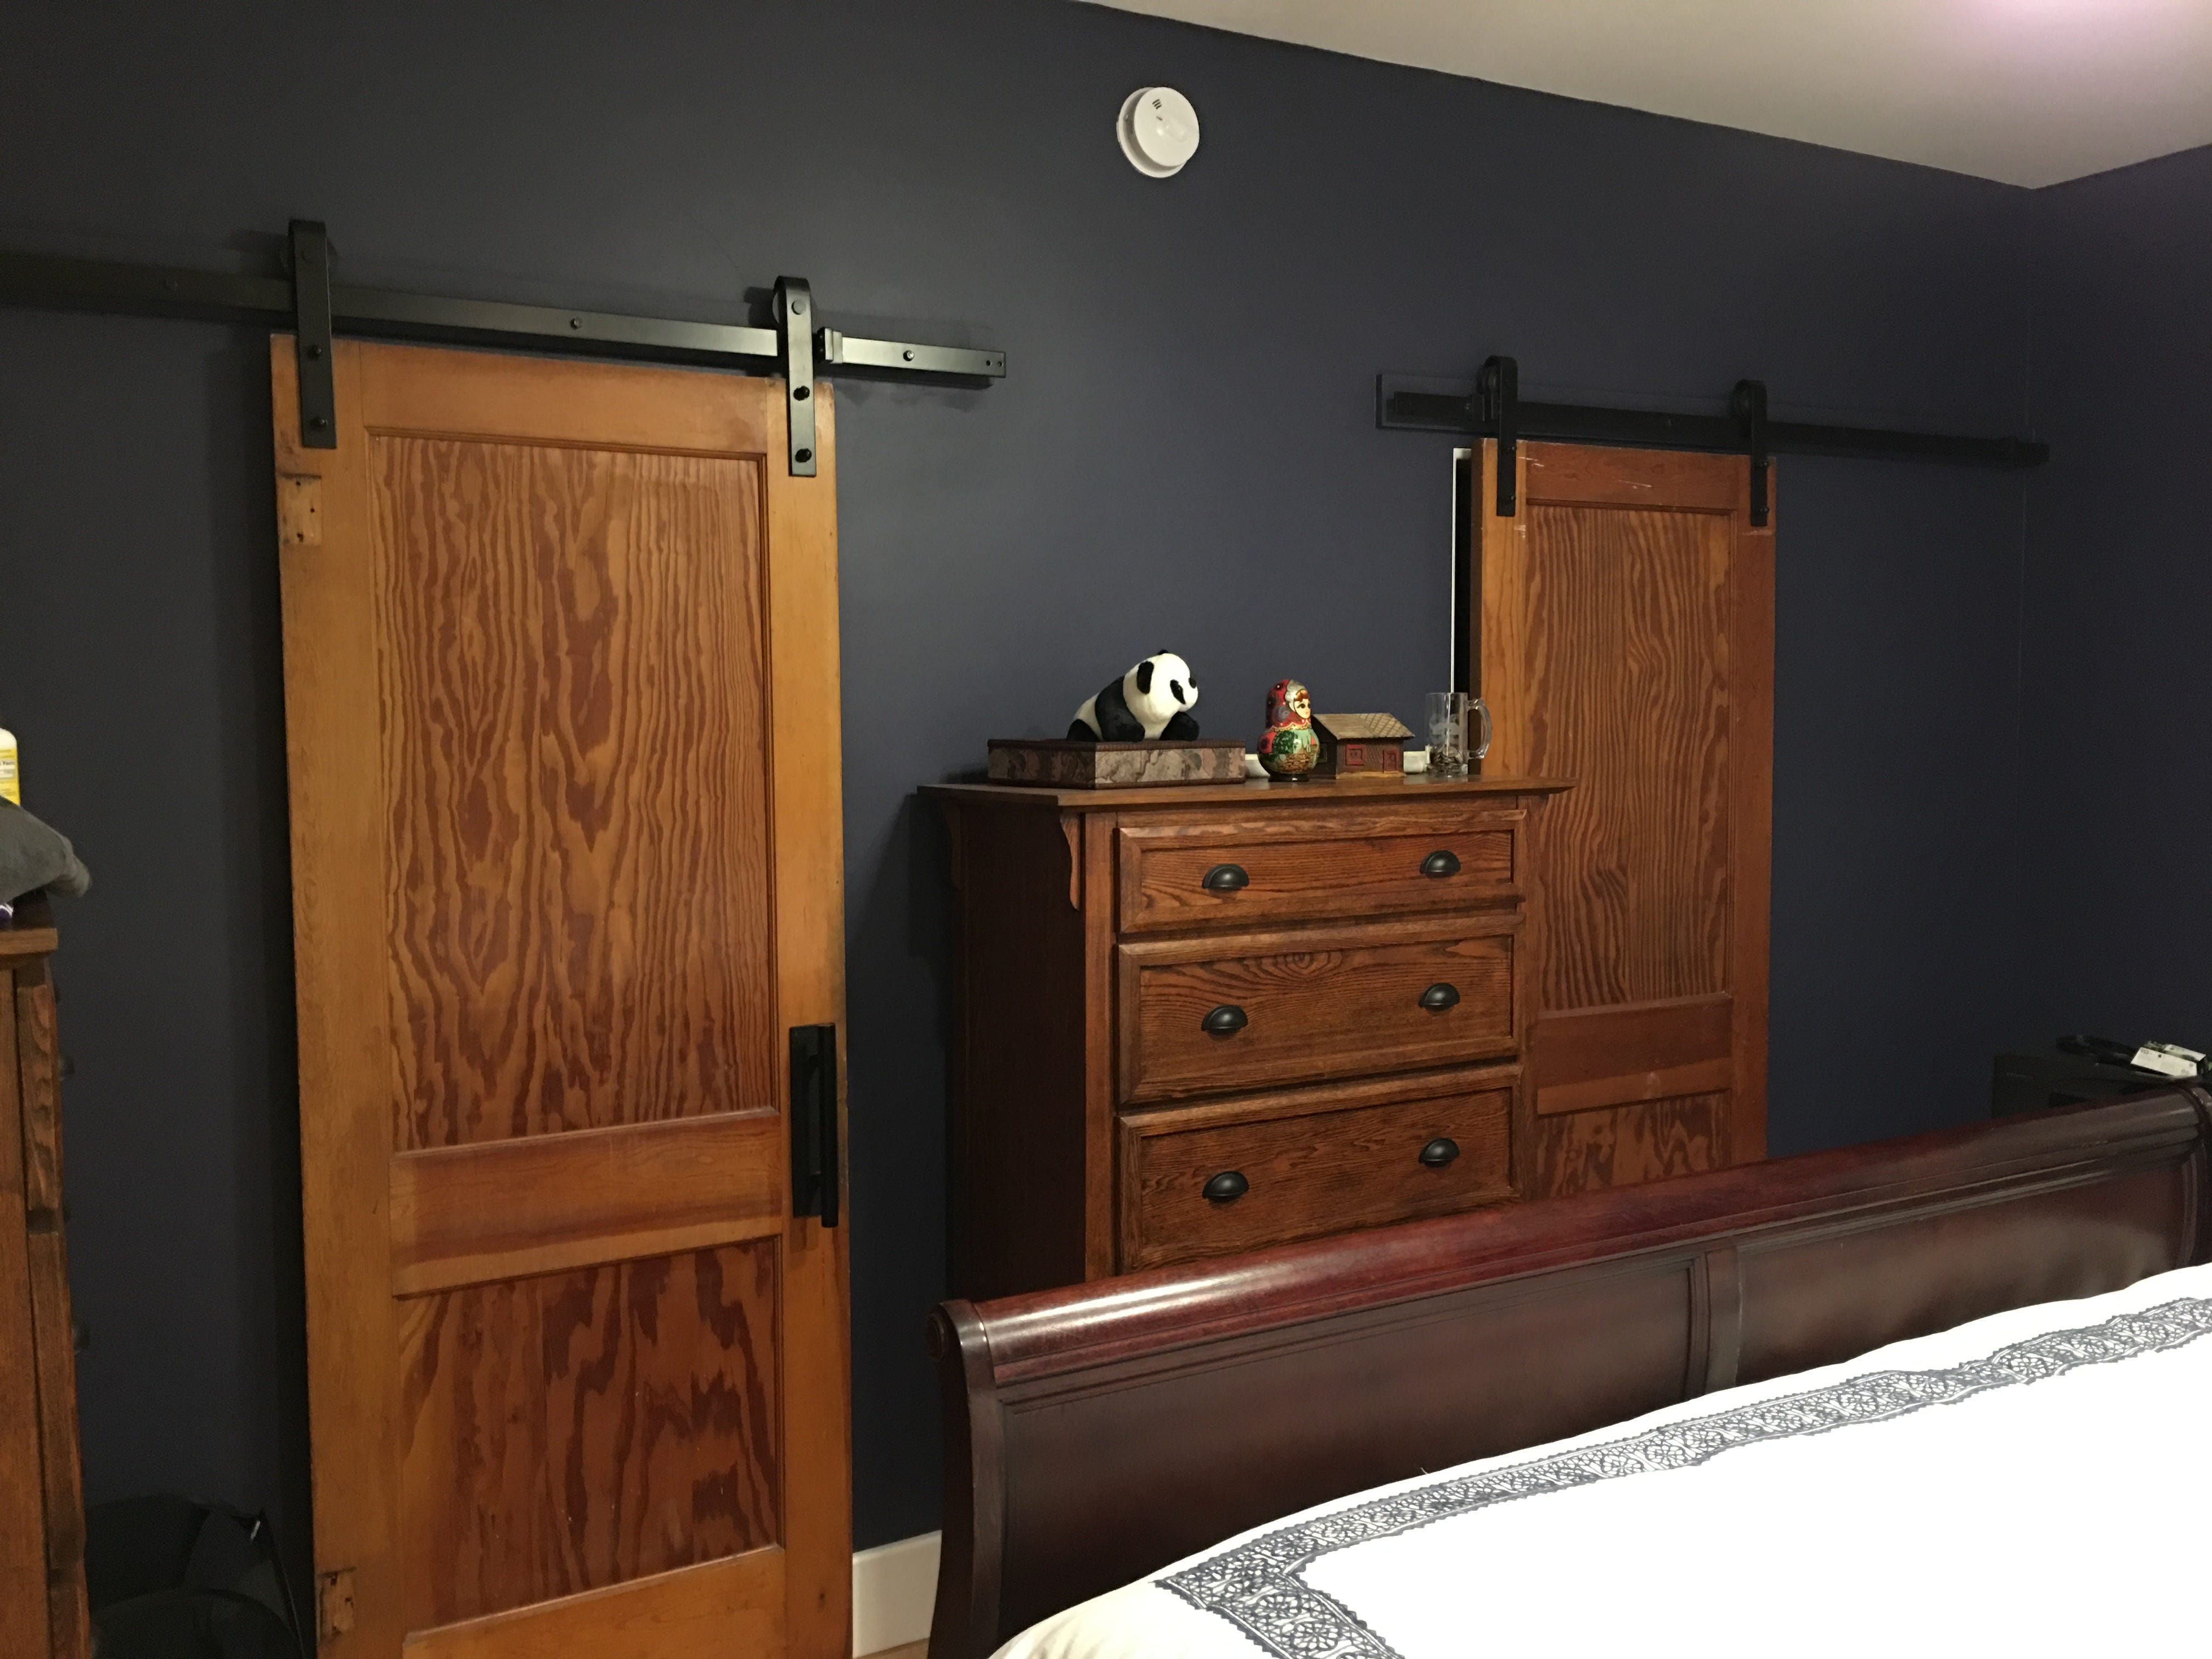 Doors from a family farm in Nebraska, built in 1923, are mounted on barn-door hardware for entrances to the master suite closet (left) and bathroom.